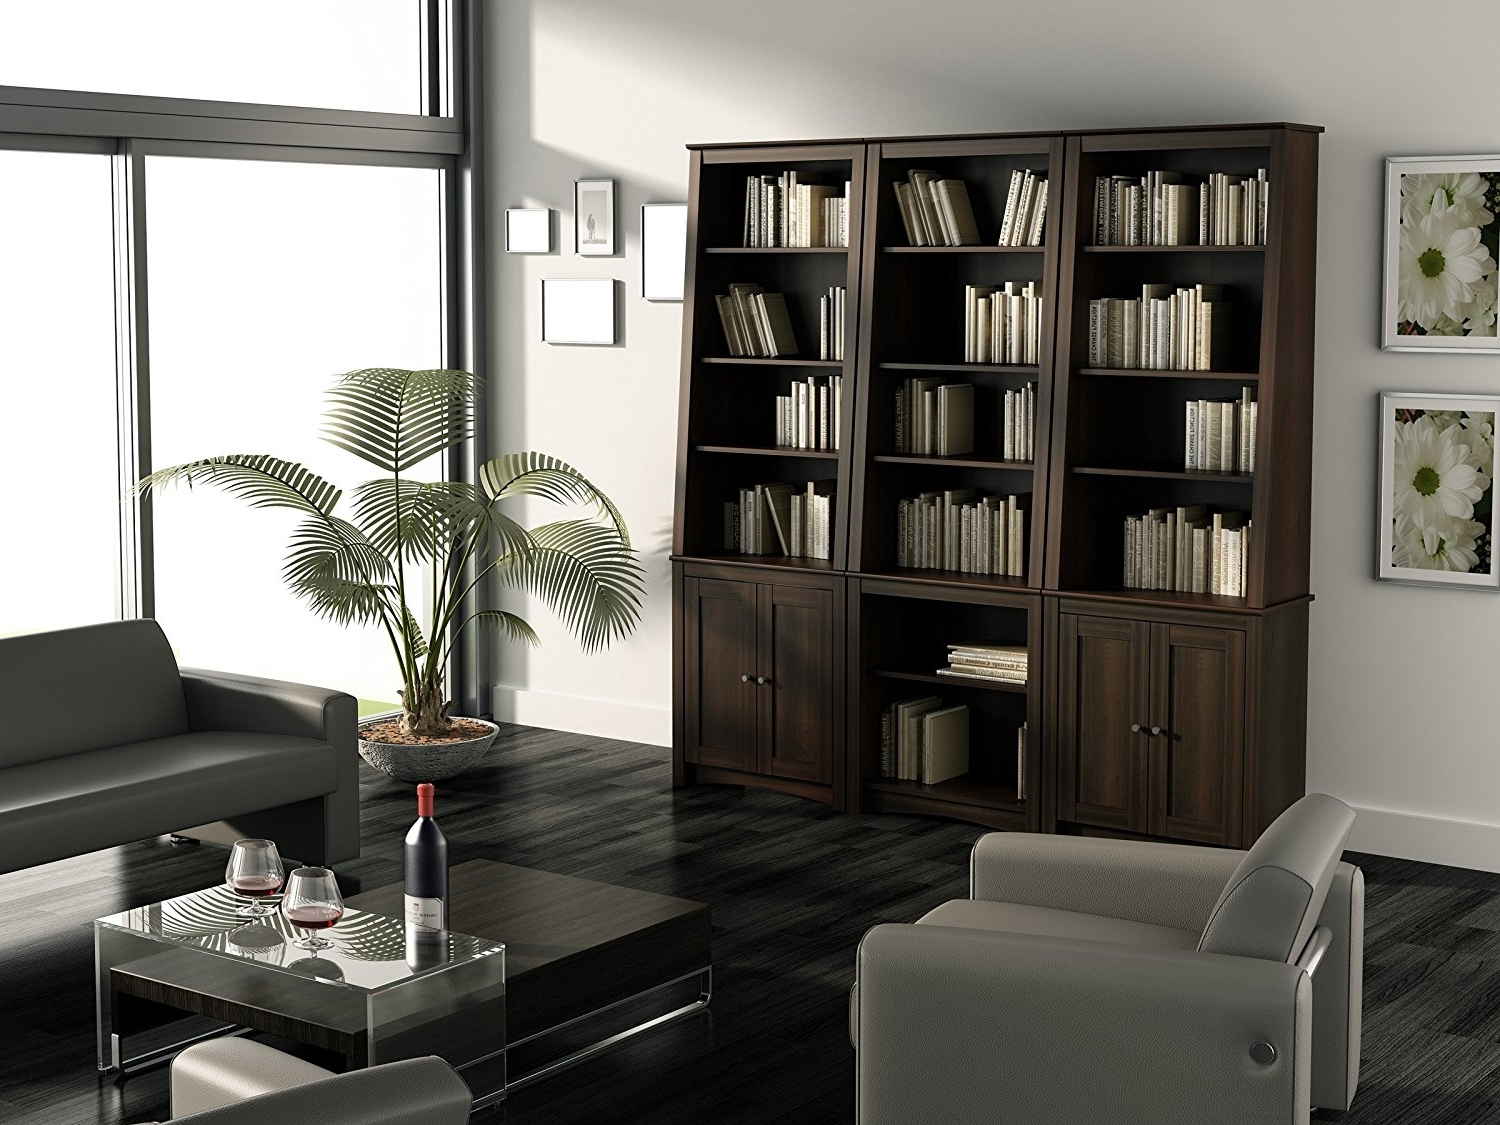 Espresso Bookcases Intended For Recent Amazon: Espresso Tall Slant Back Bookcase: Kitchen & Dining (View 5 of 15)